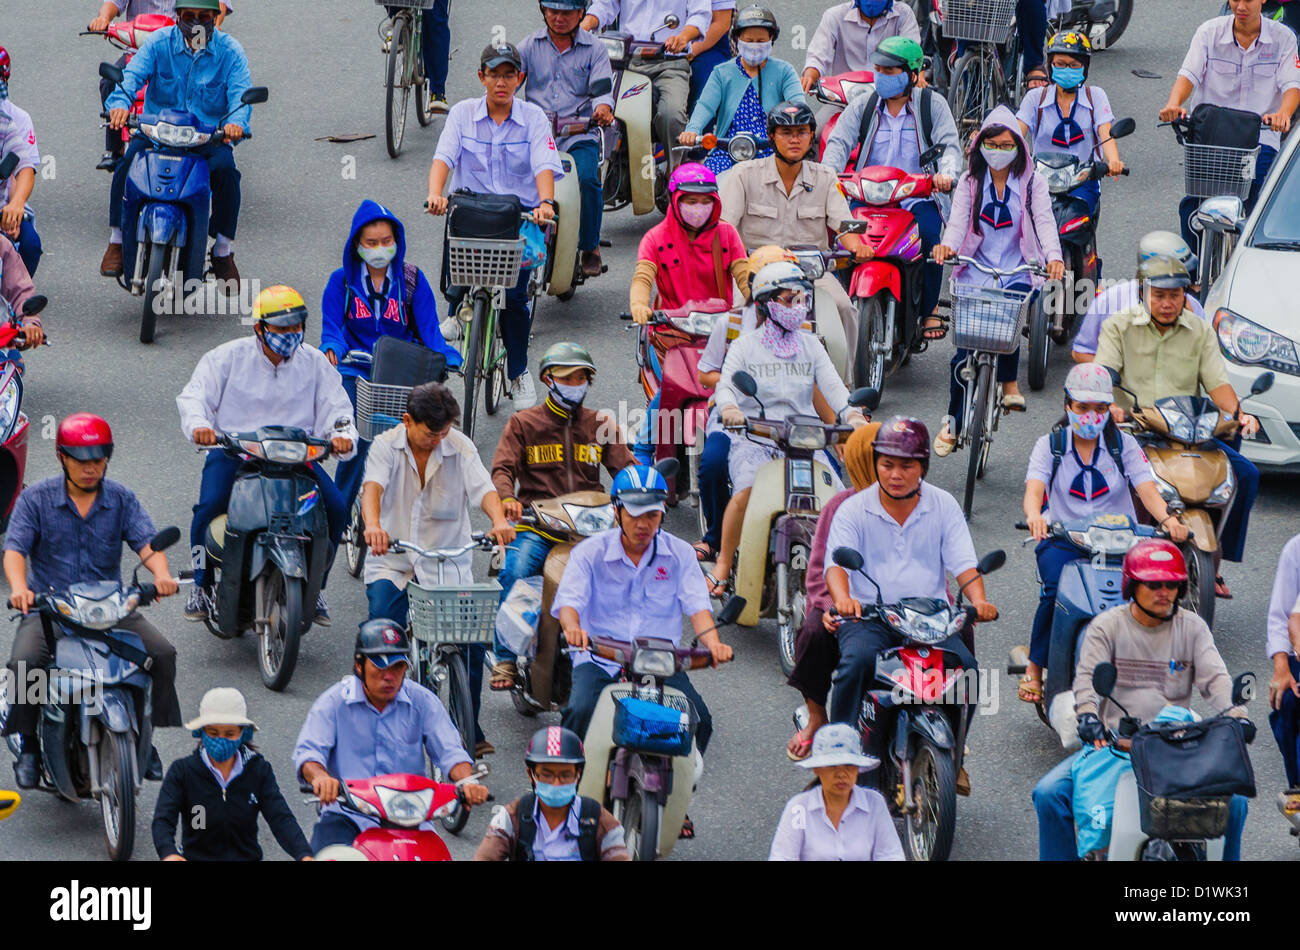 Vietnam, Ho Chi Minh City, busy traffic on roundabout, elevated view, - Stock Image